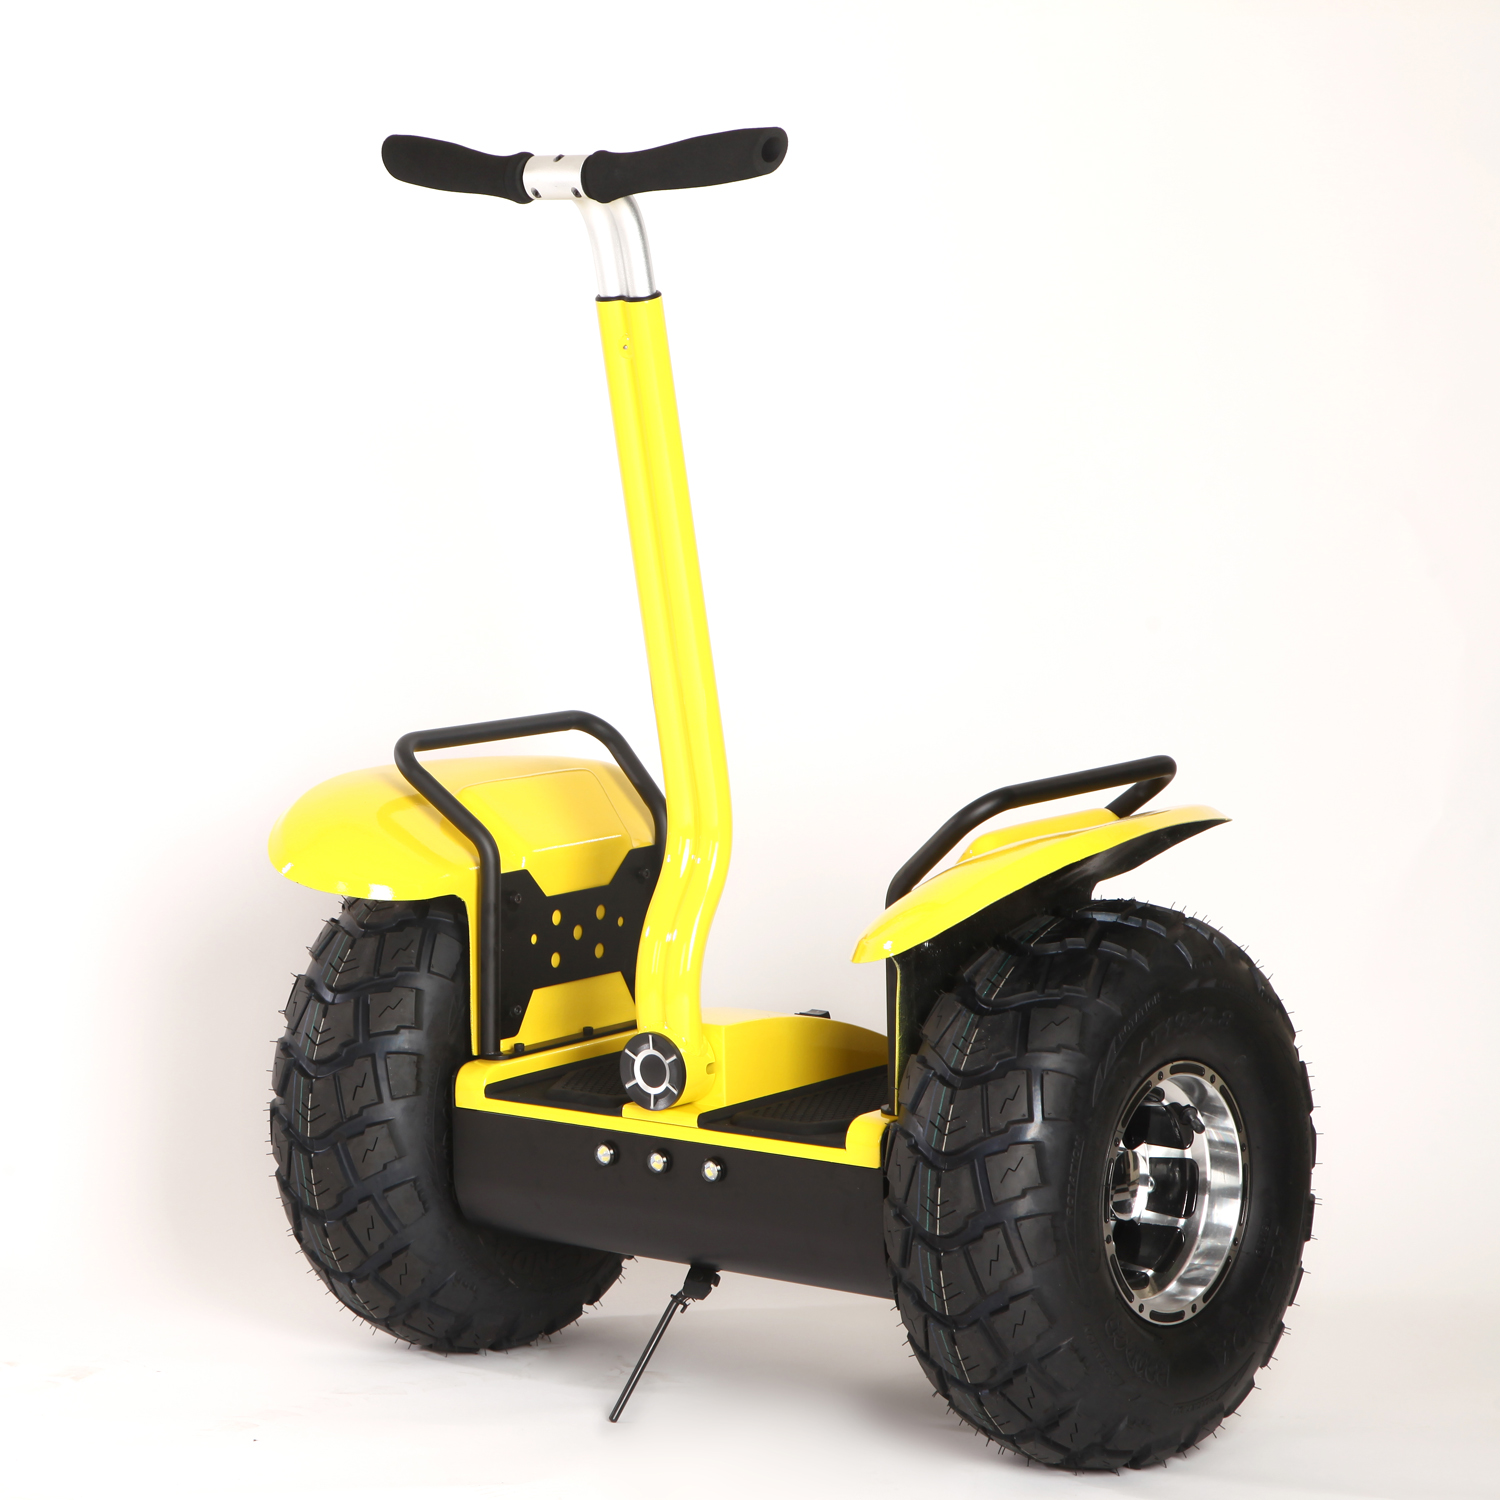 Segway Alternative Price Cost All About The Segway Cost And